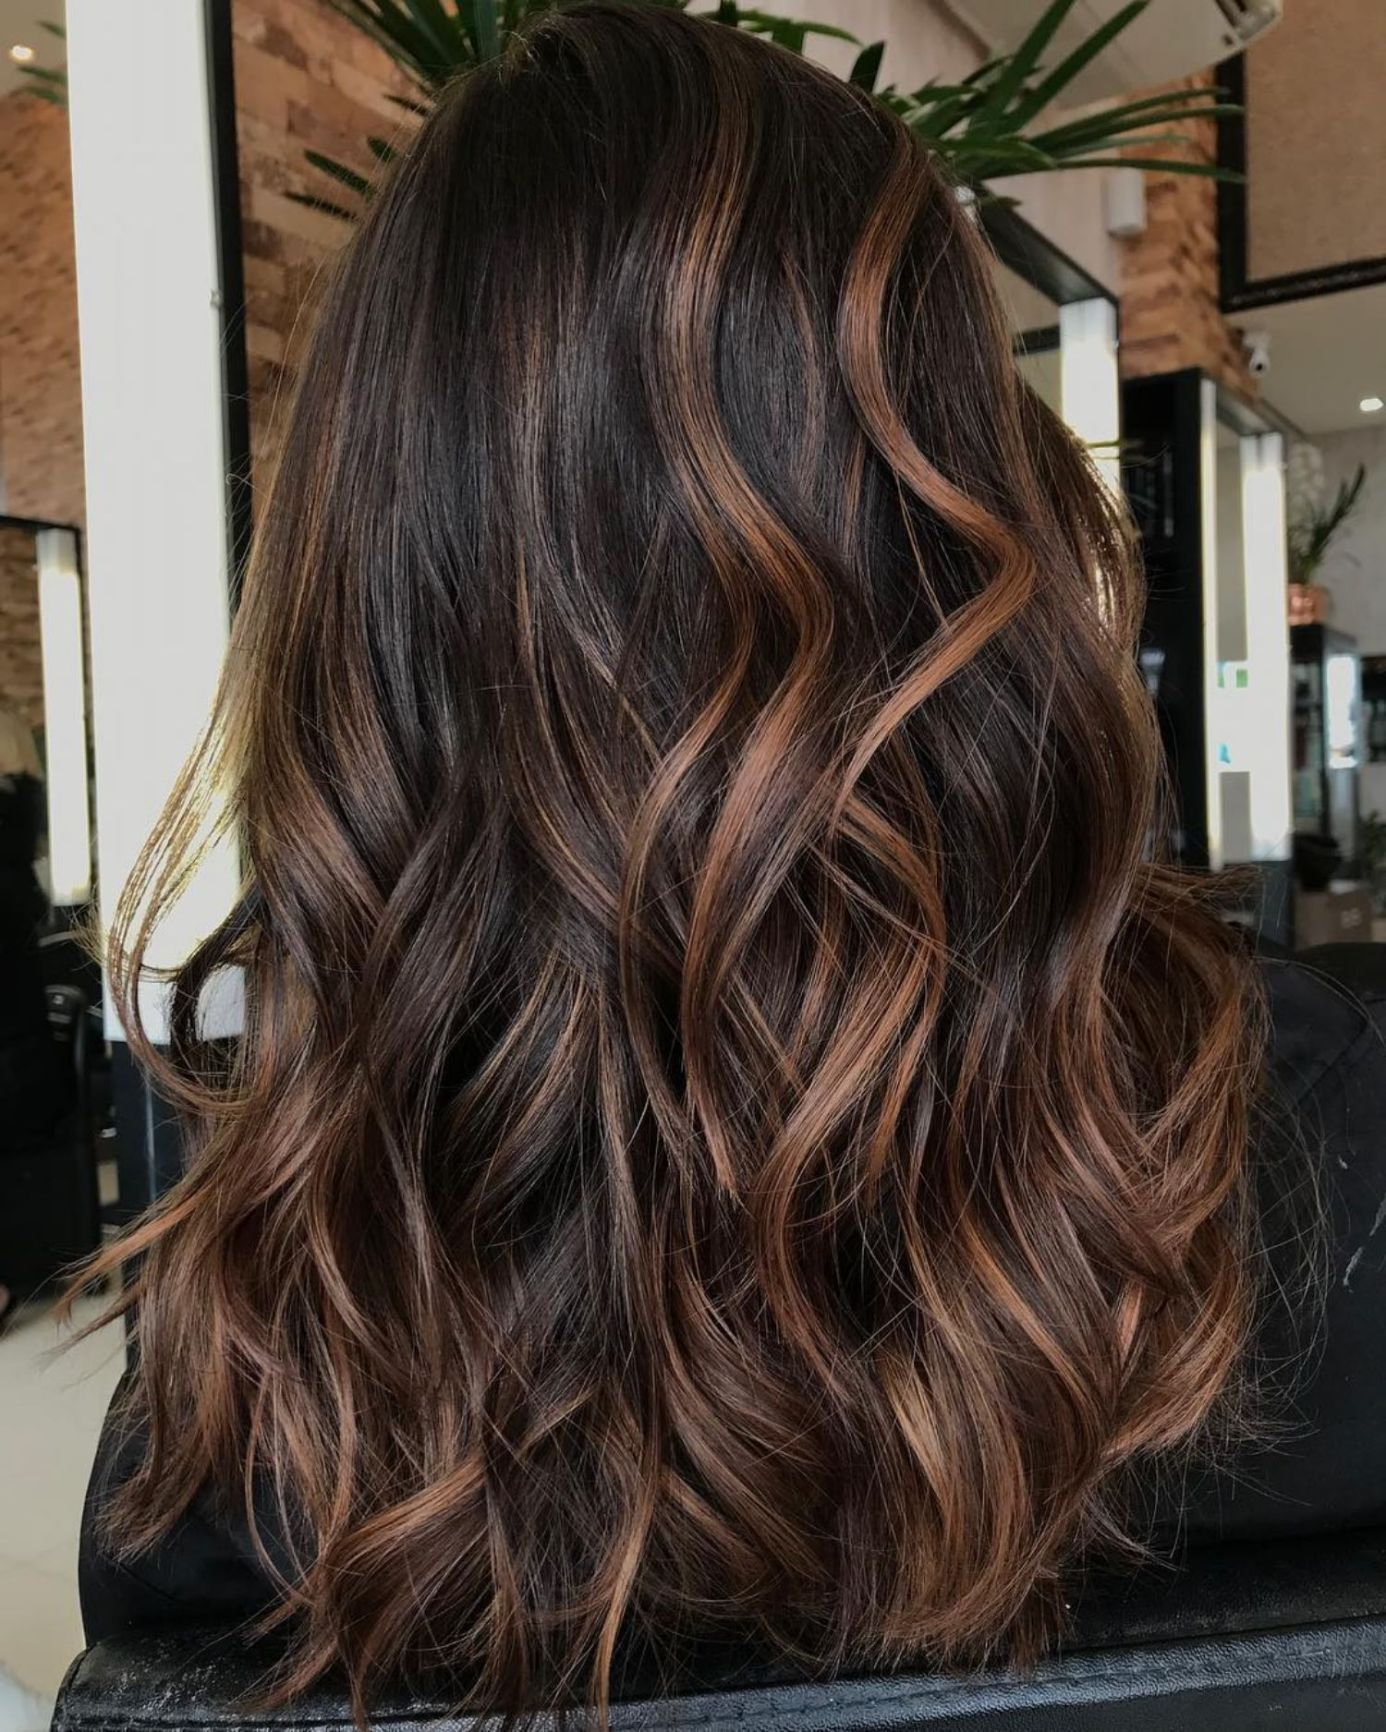 60 Chocolate Brown Hair Color Ideas For Brunettes Brown Hair With Highlights Hair Highlights Fall Hair Color For Brunettes